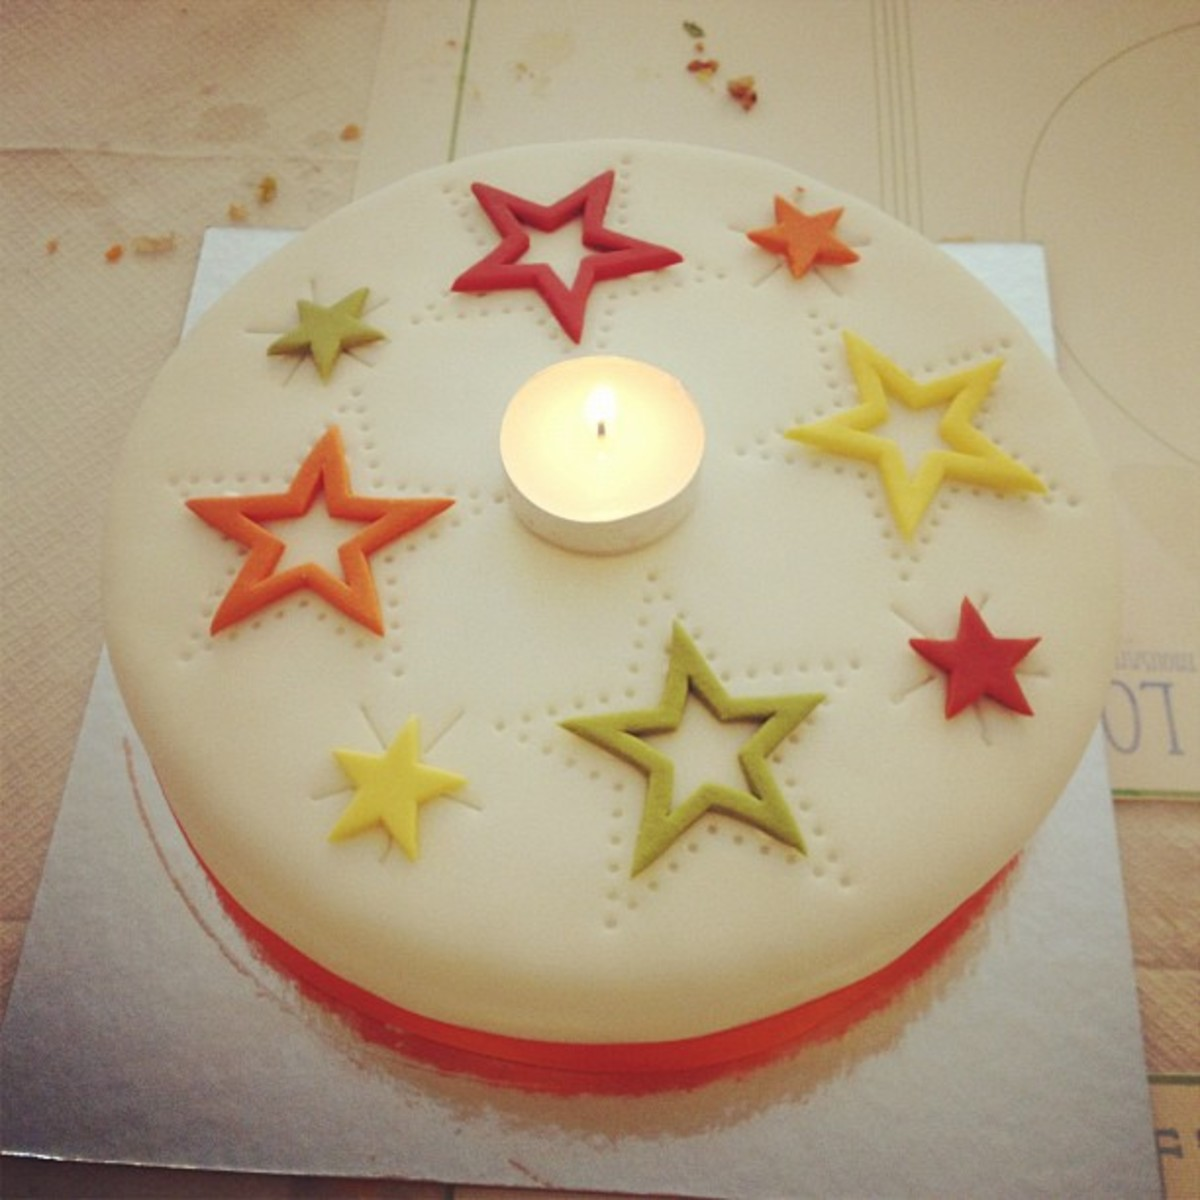 A birthday cake decorated with stars.